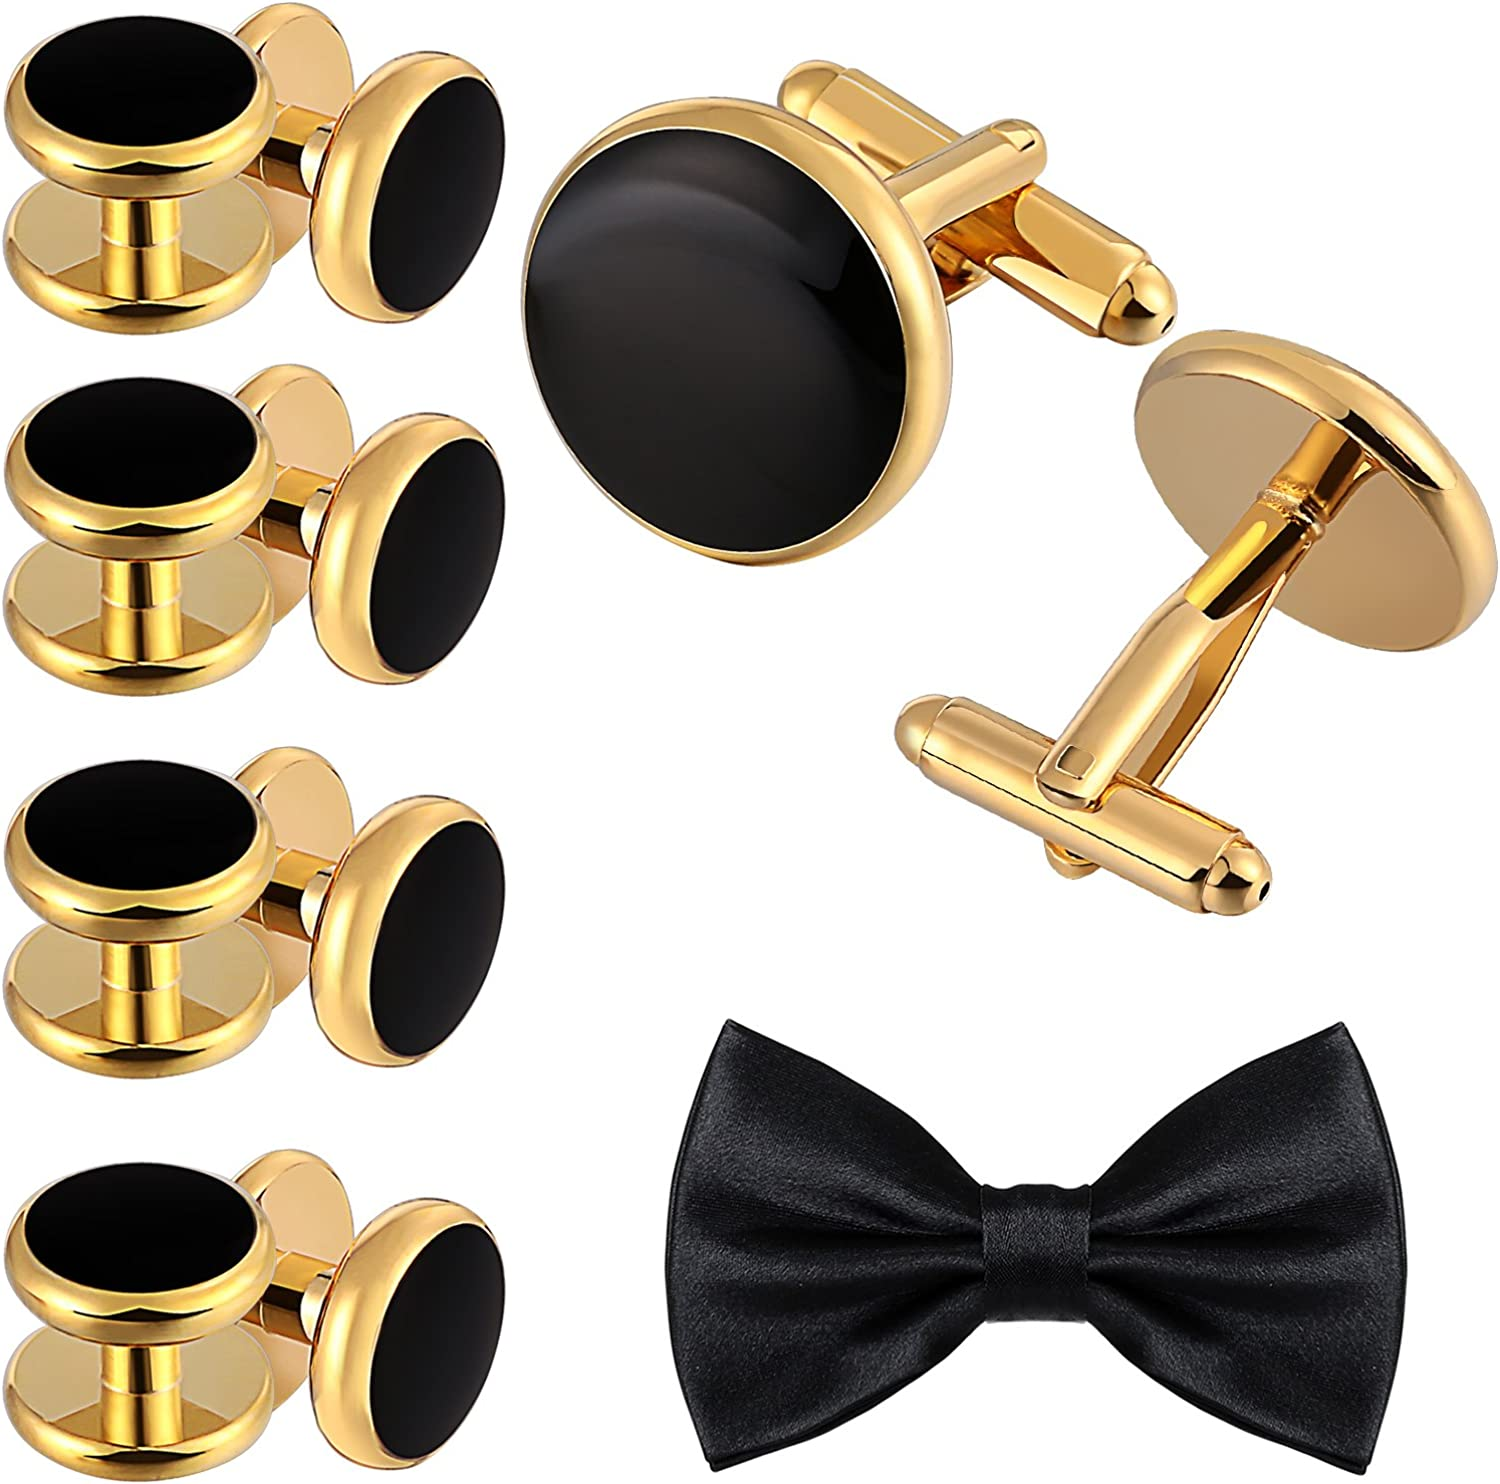 Aienid Cufflinks and Studs Set for Men Stainless Steel Shirt Business Cufflinks Jewelry by